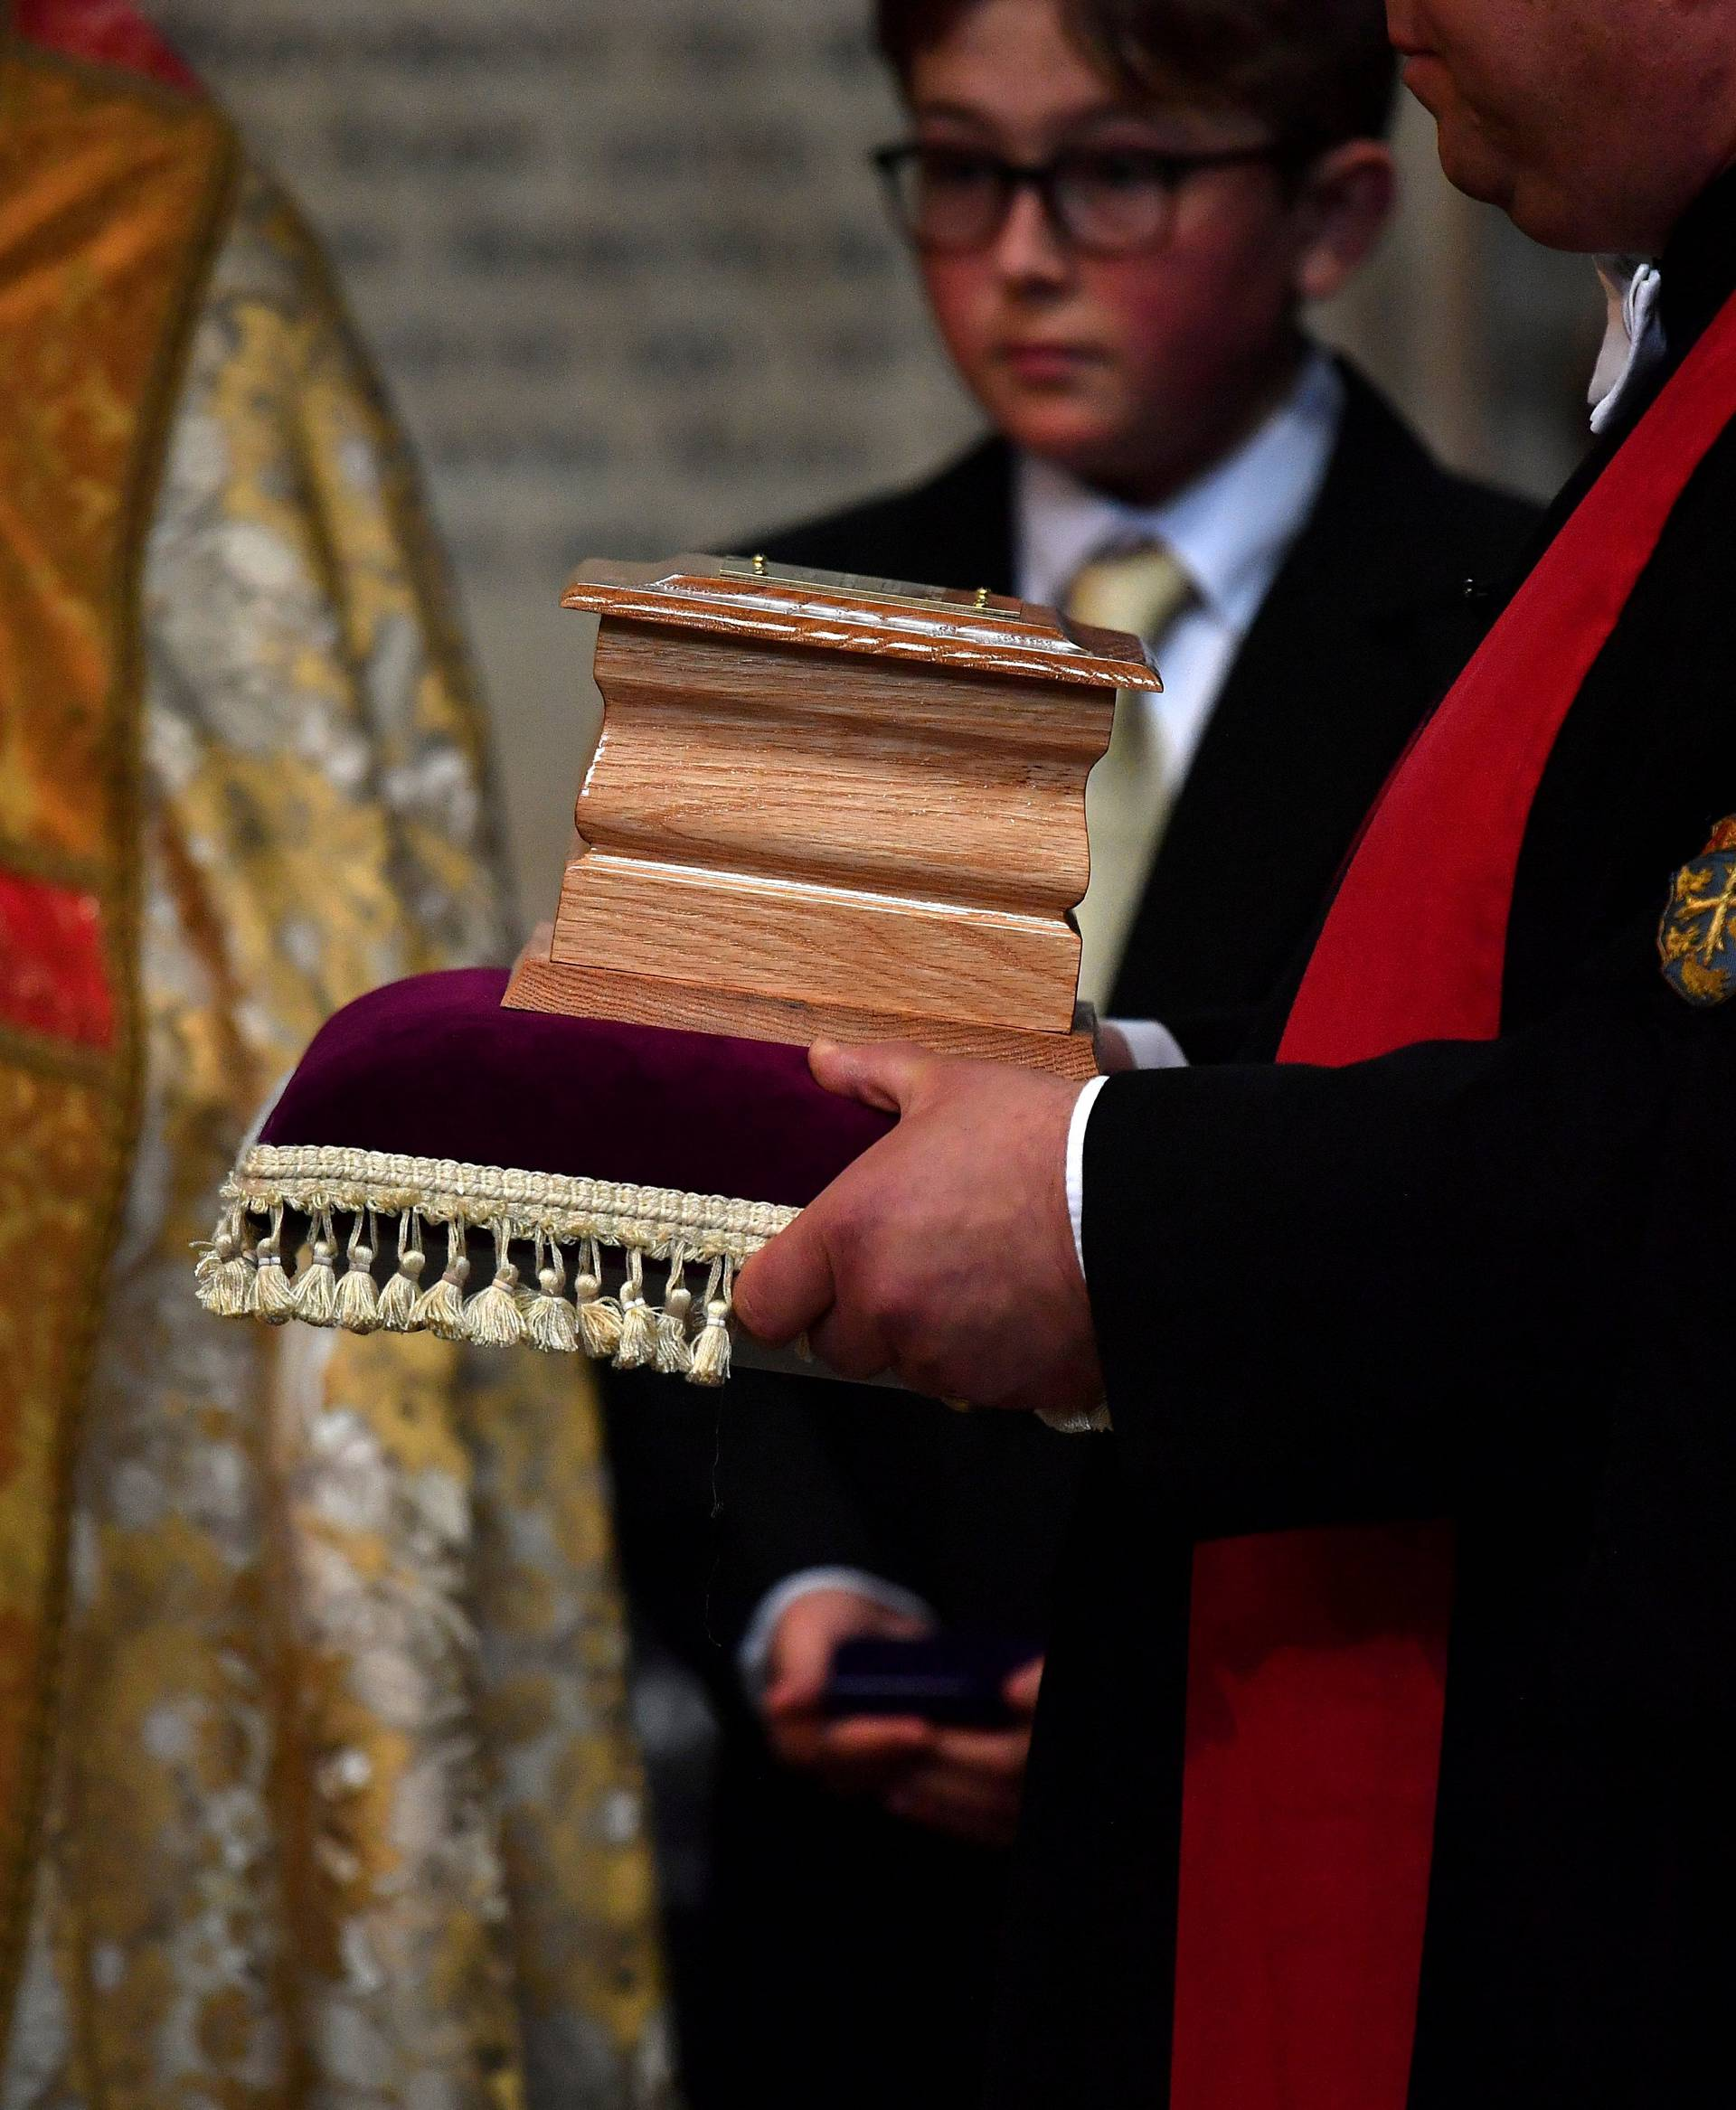 The ashes of British scientist Stephen Hawking are held at the site of interment in the nave of the Abbey church, during a memorial service at Westminster Abbey, in London